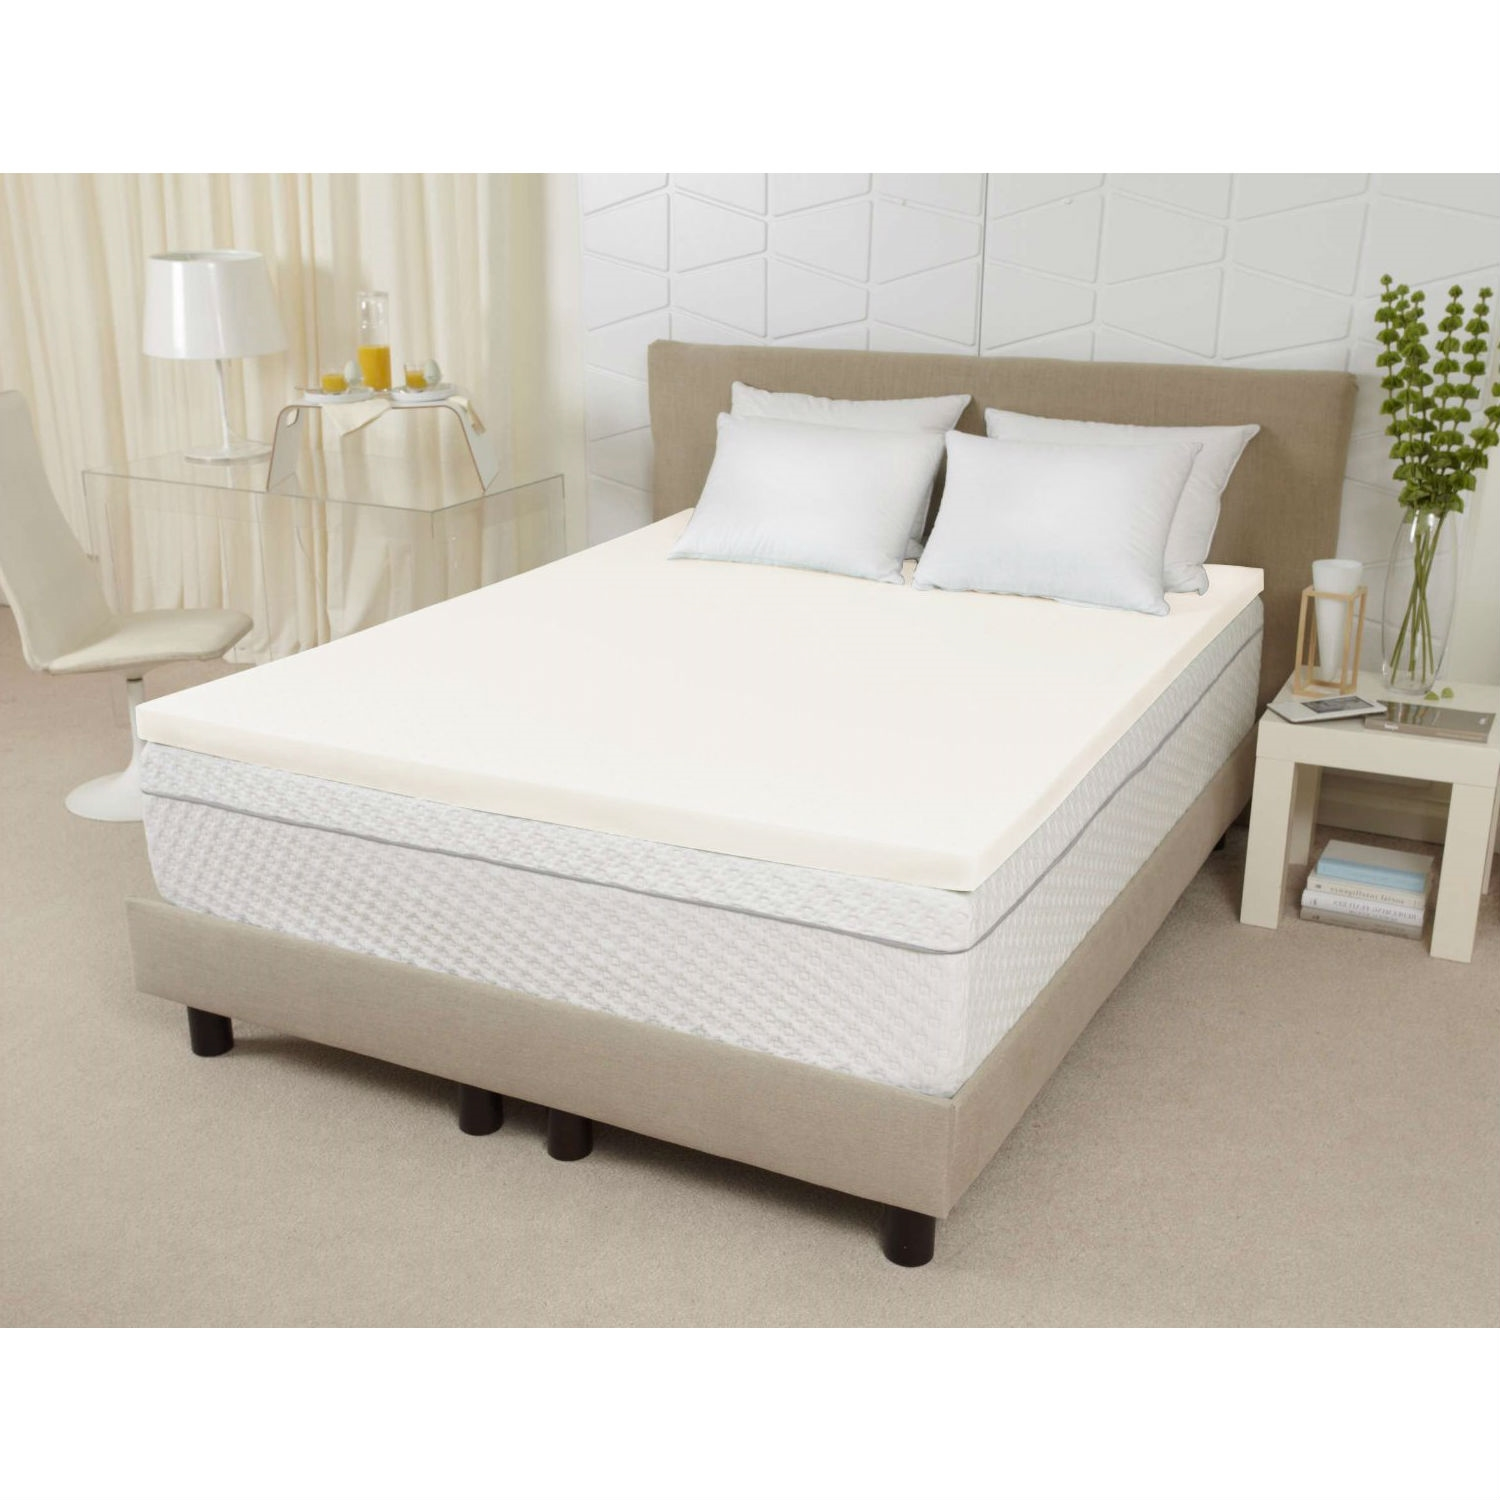 Queen size 3-inch Thick Ventilated Memory Foam Mattress ...